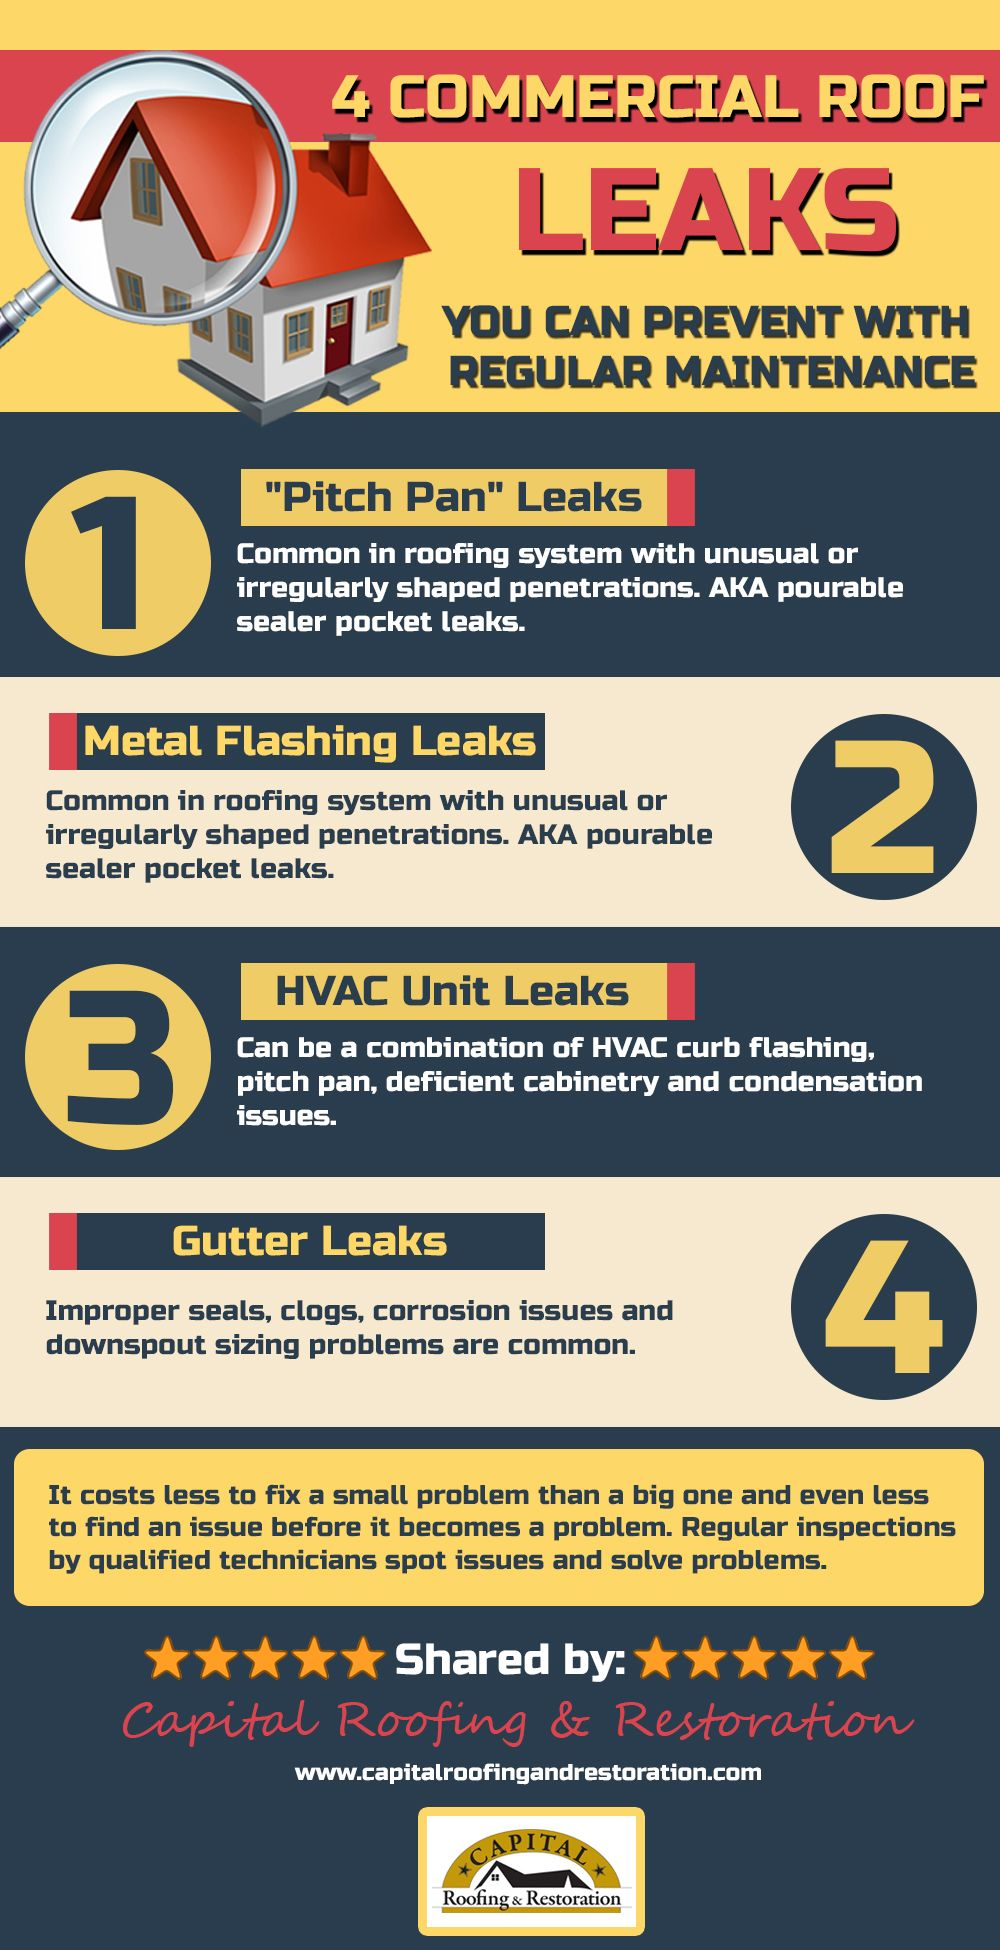 4 Commercial Roof Leaks Roofing Systems Roofing Companies Roofing